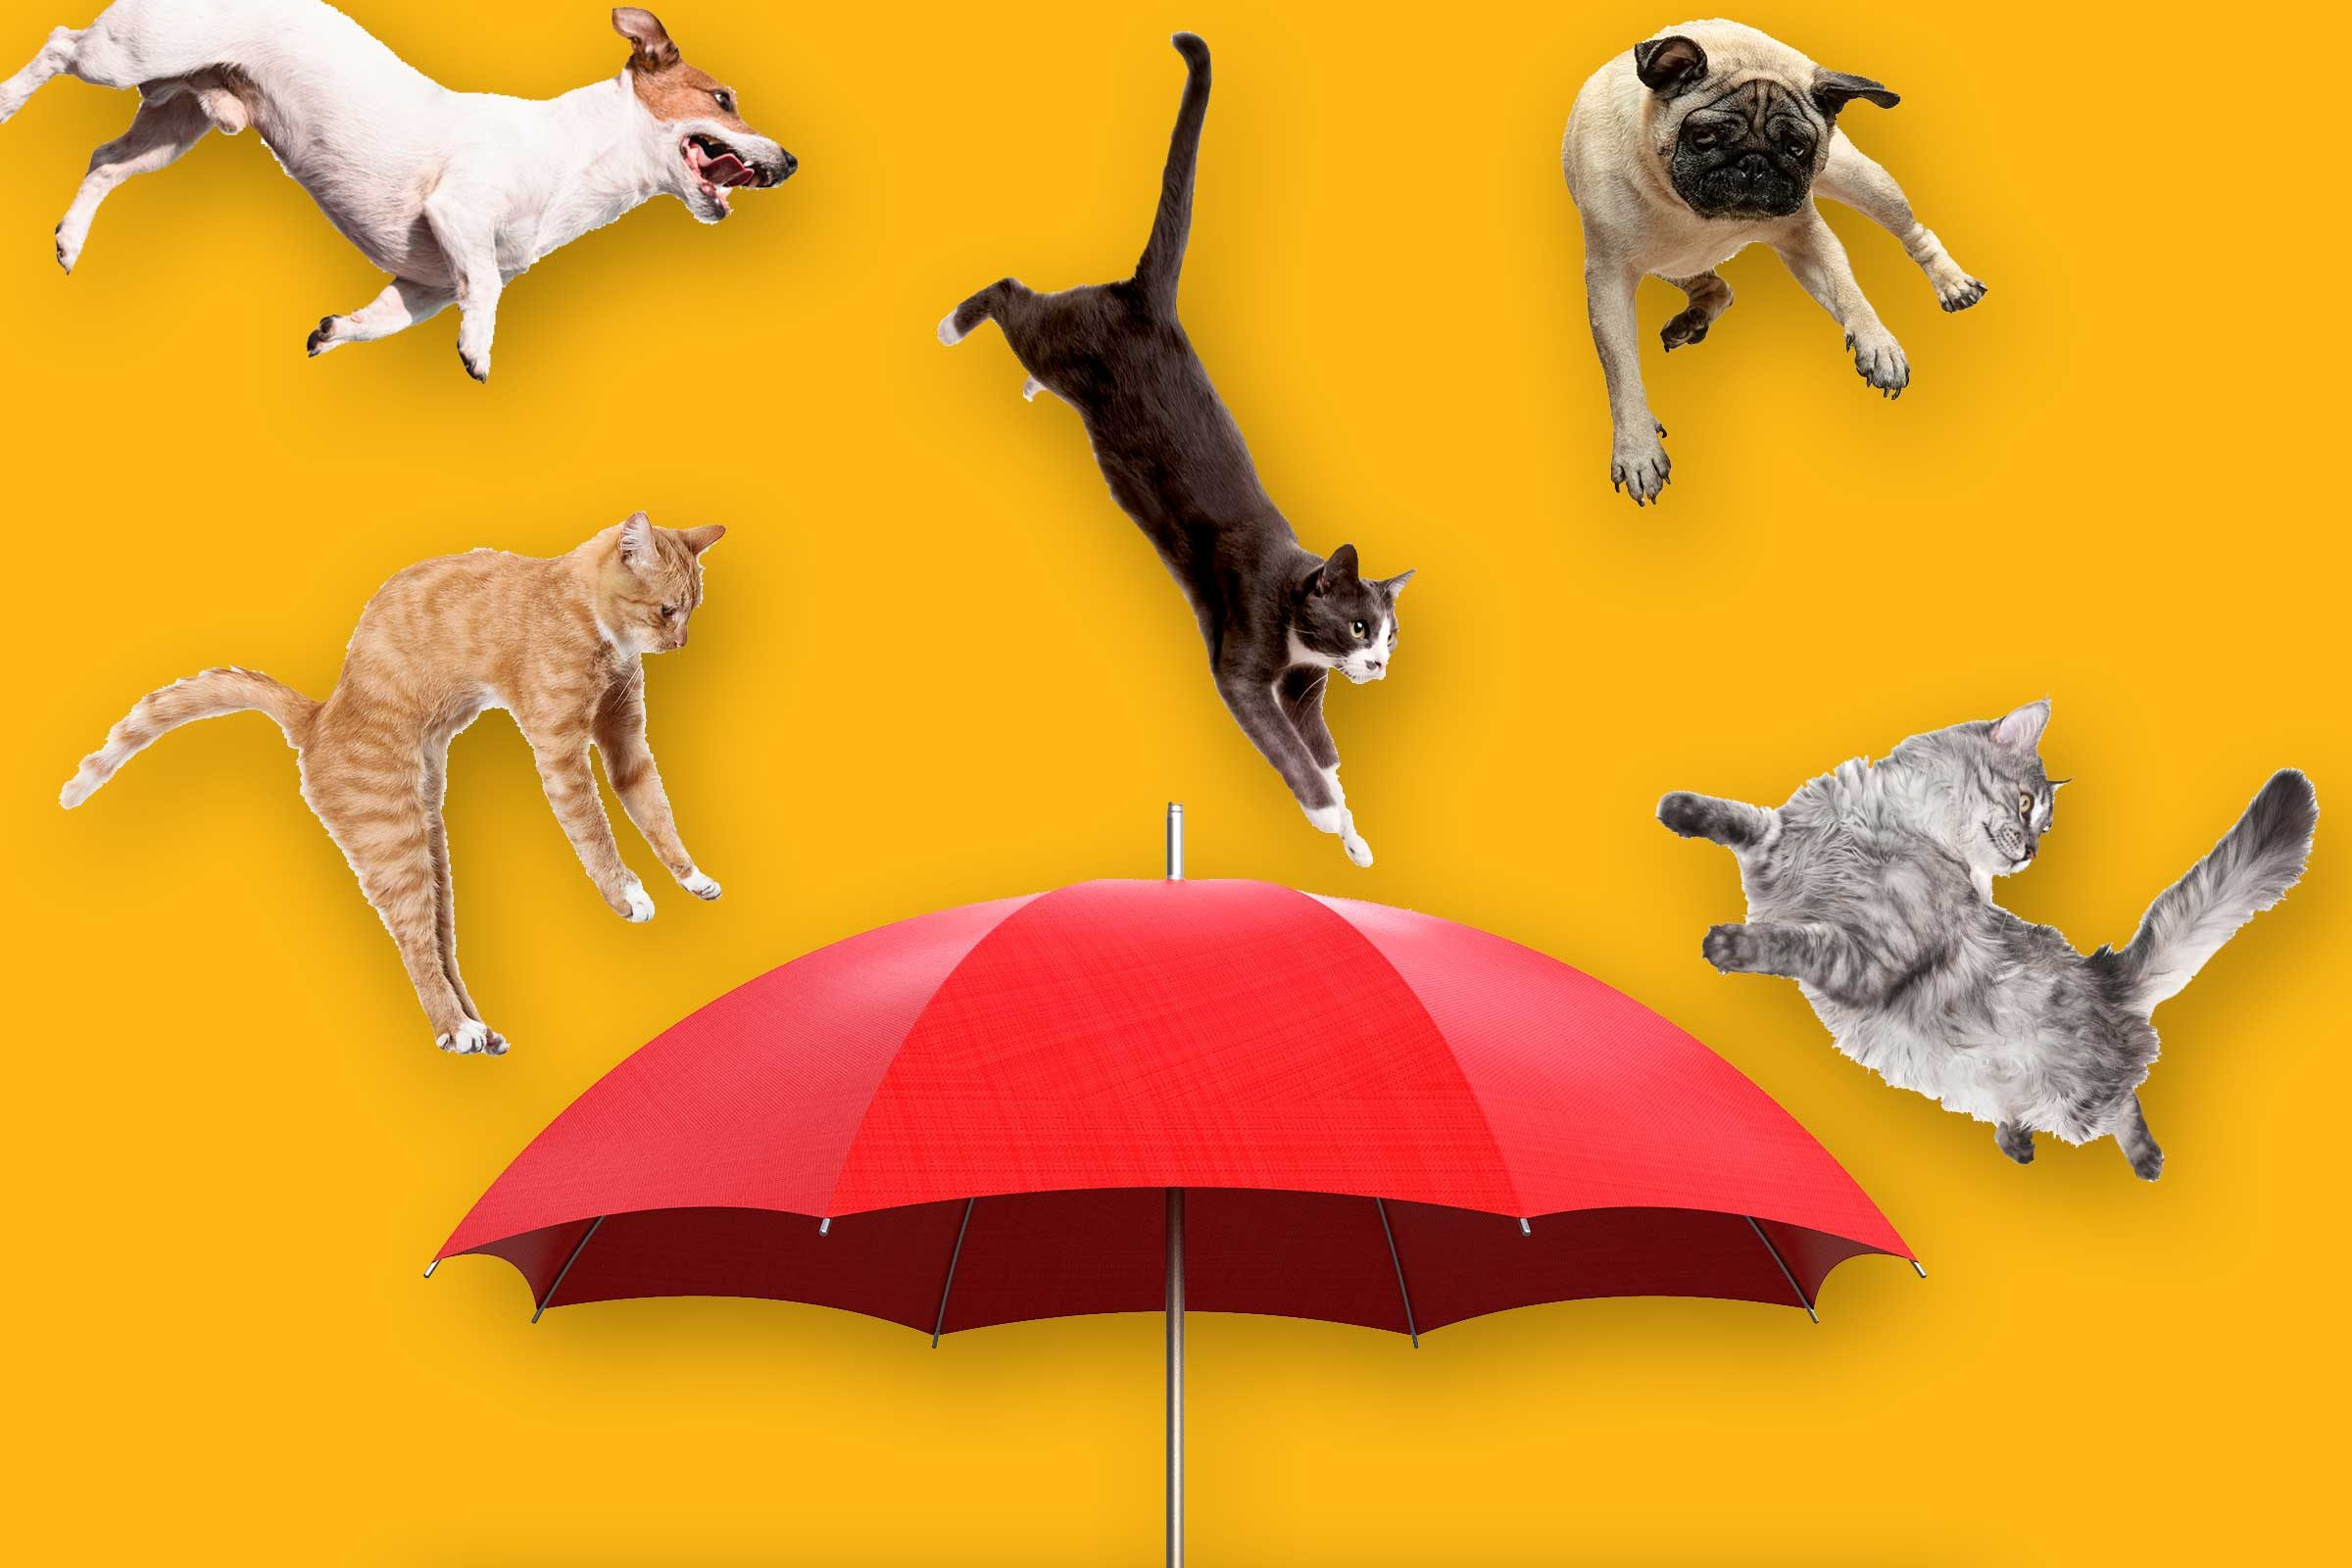 raining cats and dogs idiom